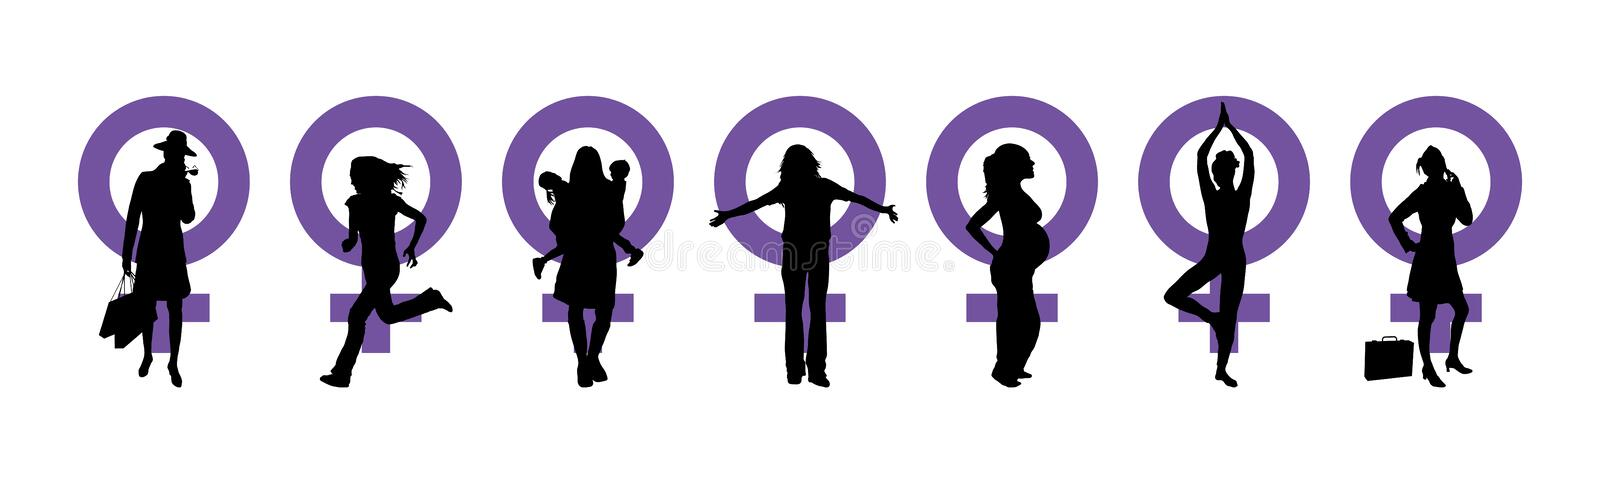 Women's Day Banner. Silhouettes of women and venus symbol to represent International Woman's Day